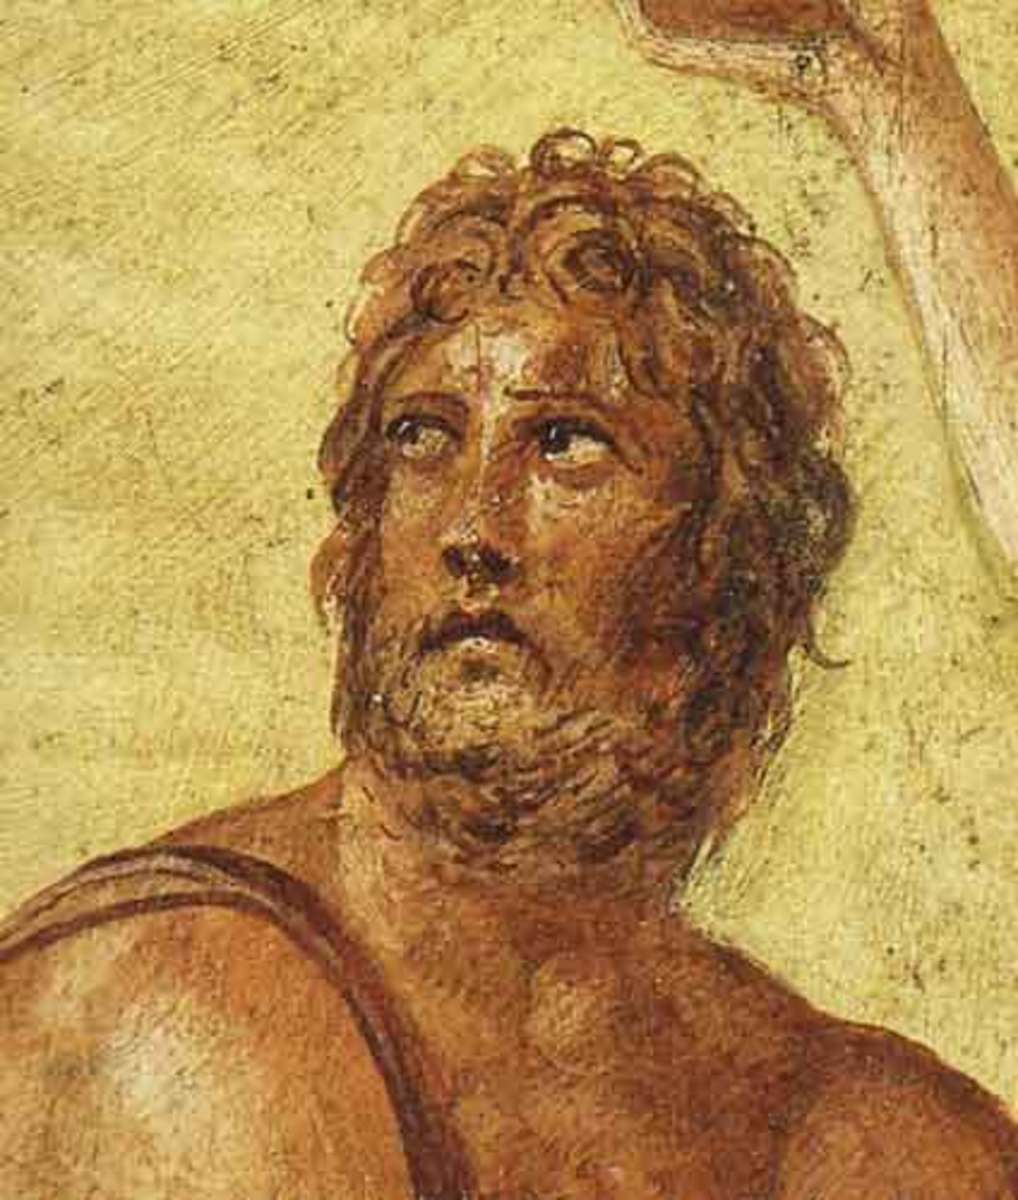 An Artist's Depiction of a Weary Looking Odysseus